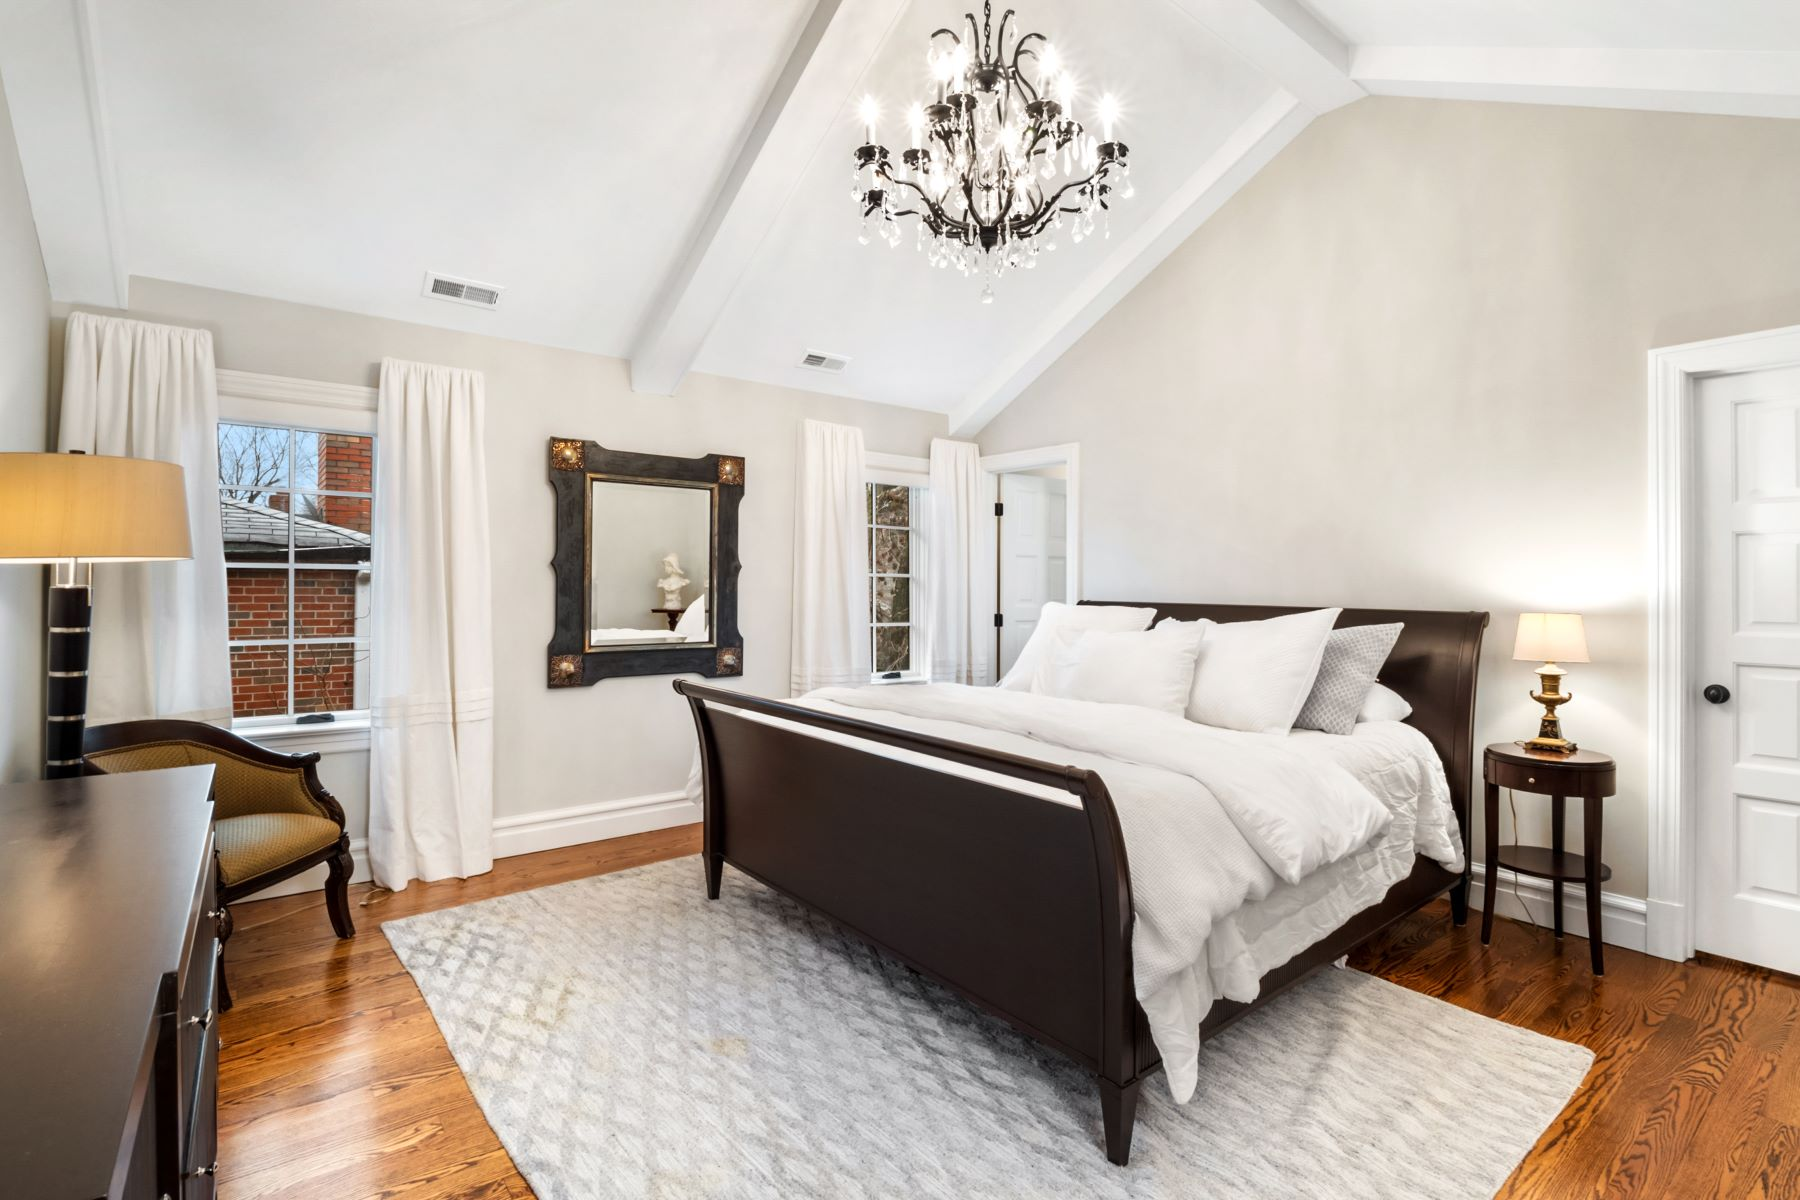 Additional photo for property listing at Incredible Period Restoration Townhome 7430 Delmar Boulevard University City, Missouri 63130 United States